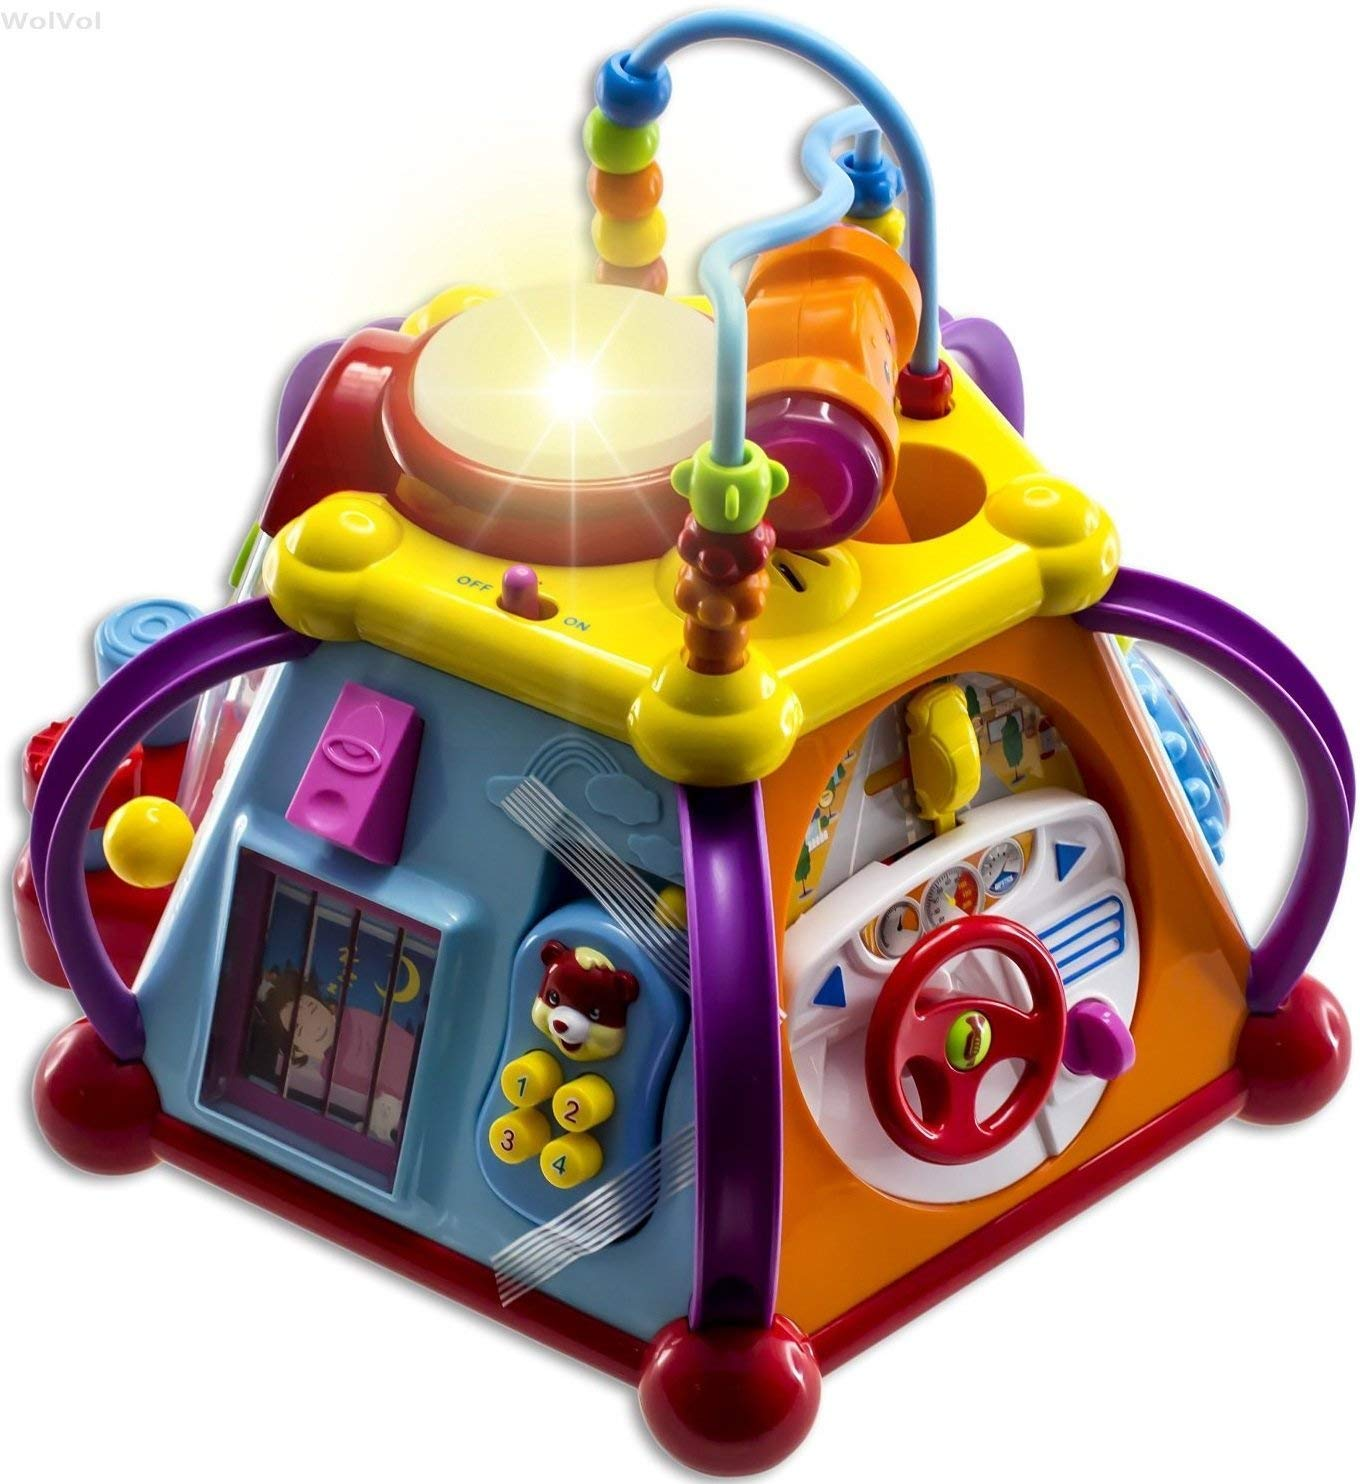 Top 15 Best Educational Toys for 1 Year Old (2020 Reviews) 6